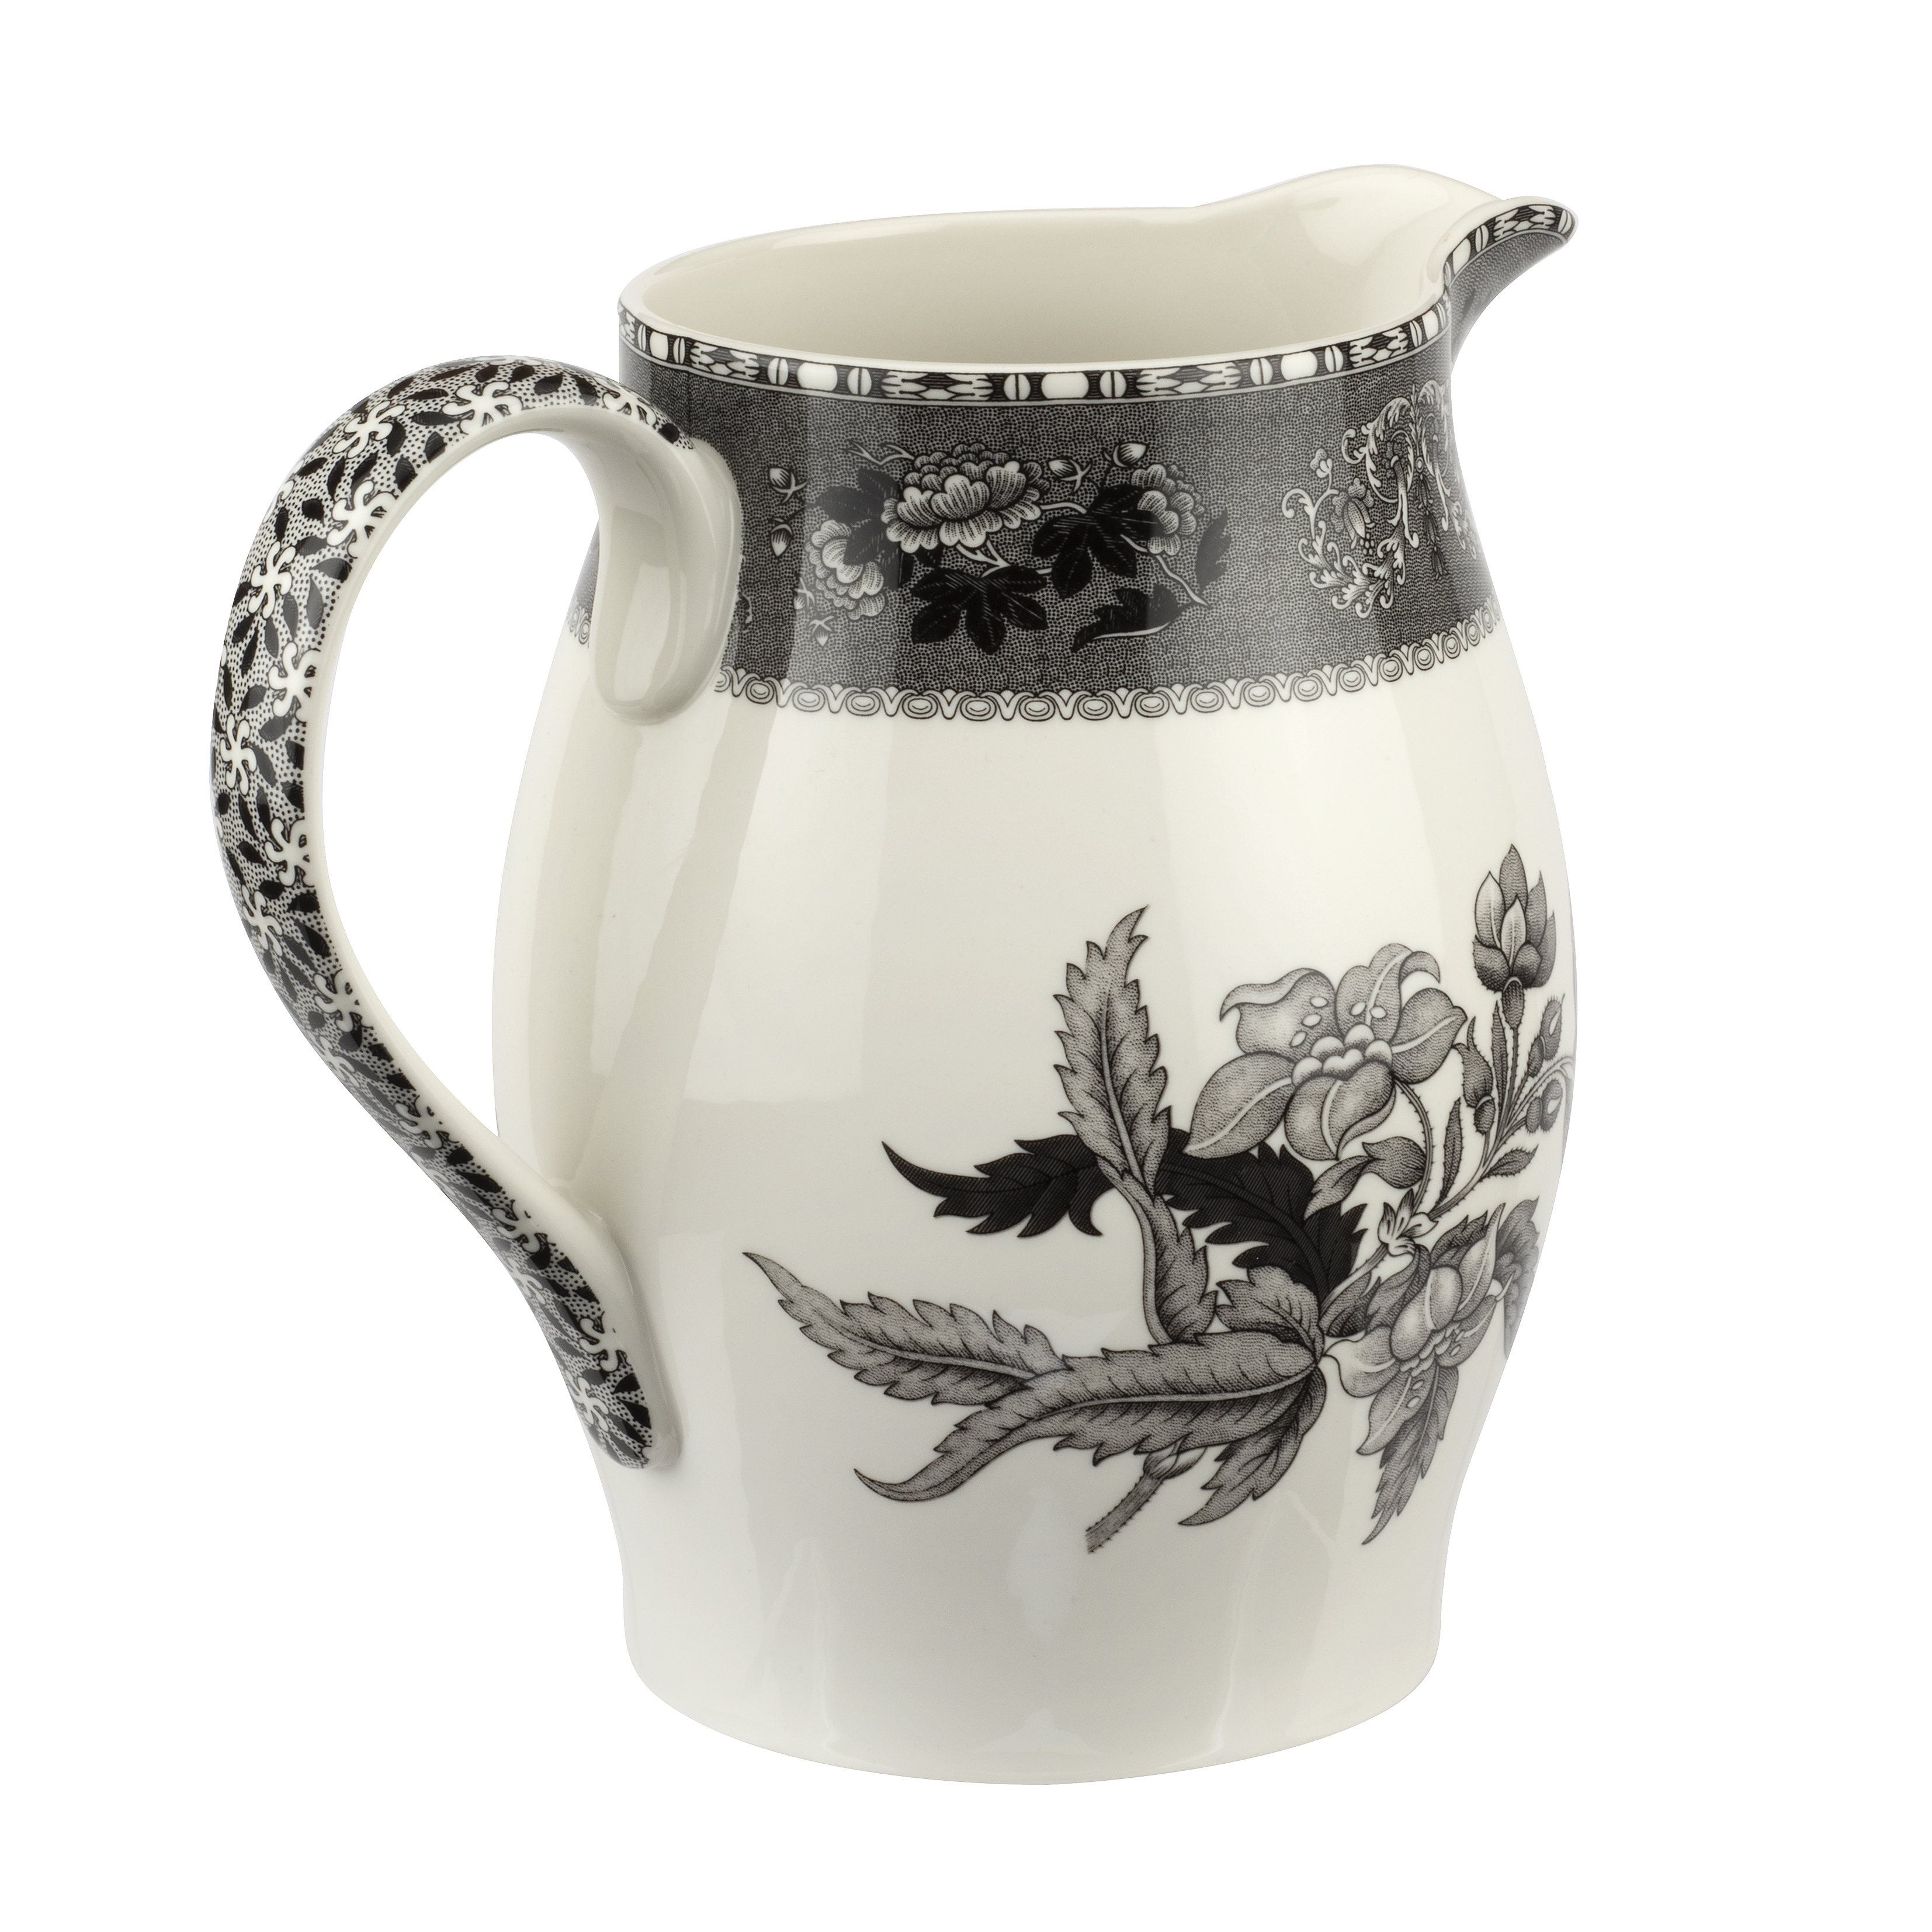 Spode Heritage 3.5 Pint Pitcher (Camilla) image number 1